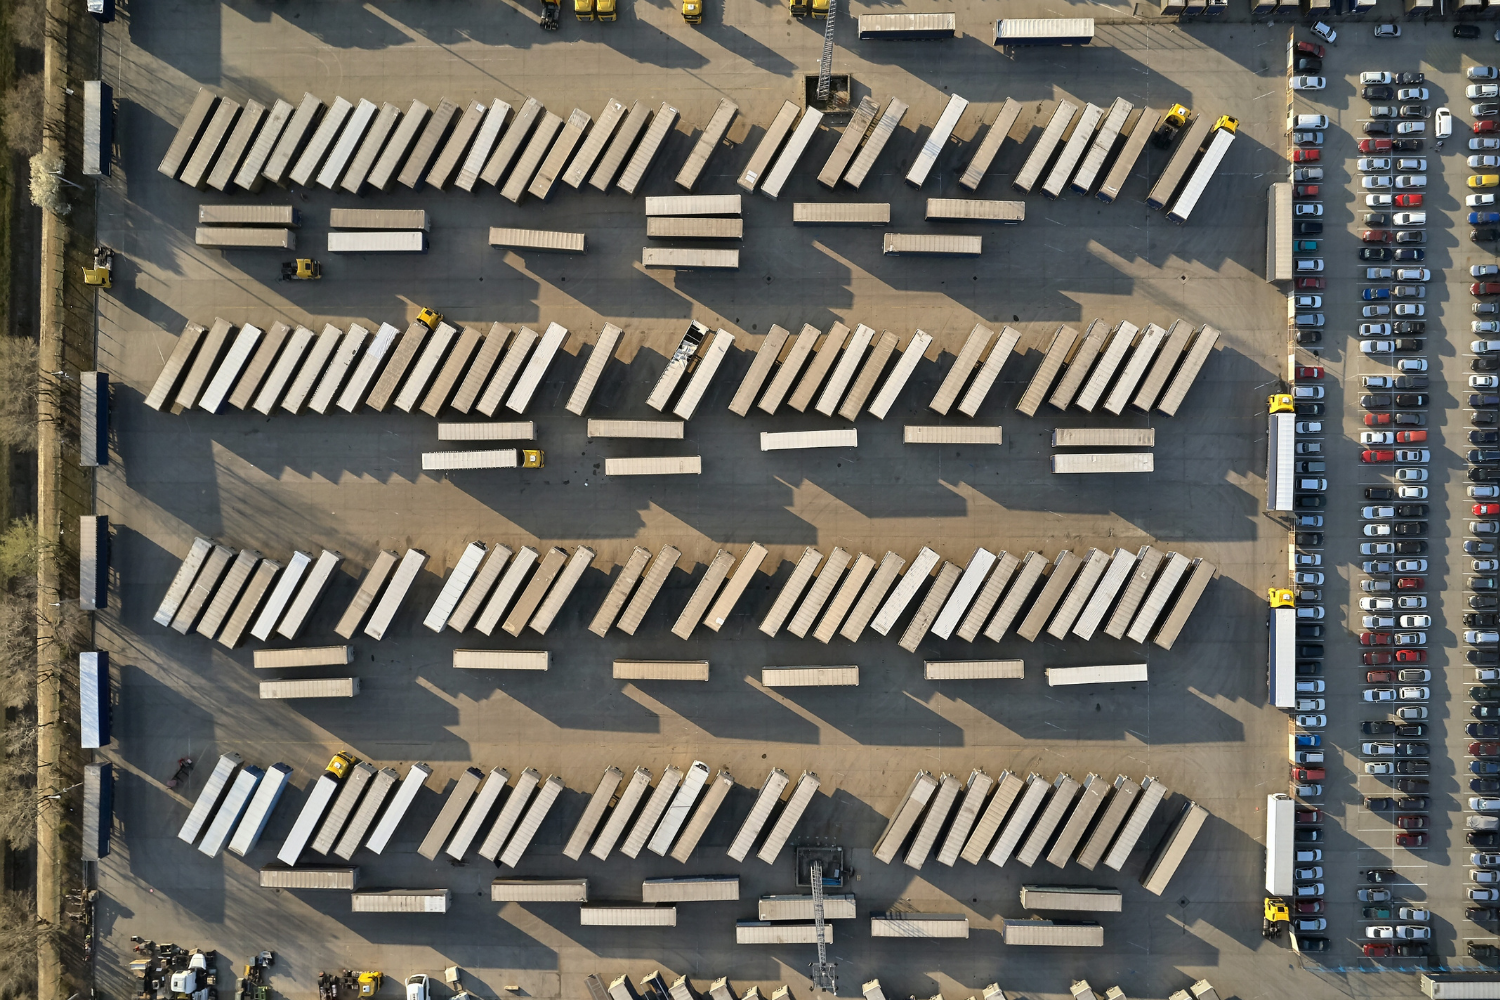 Image of a top down view of a massive logistics operation that can use the help of an intelligent yard management software system